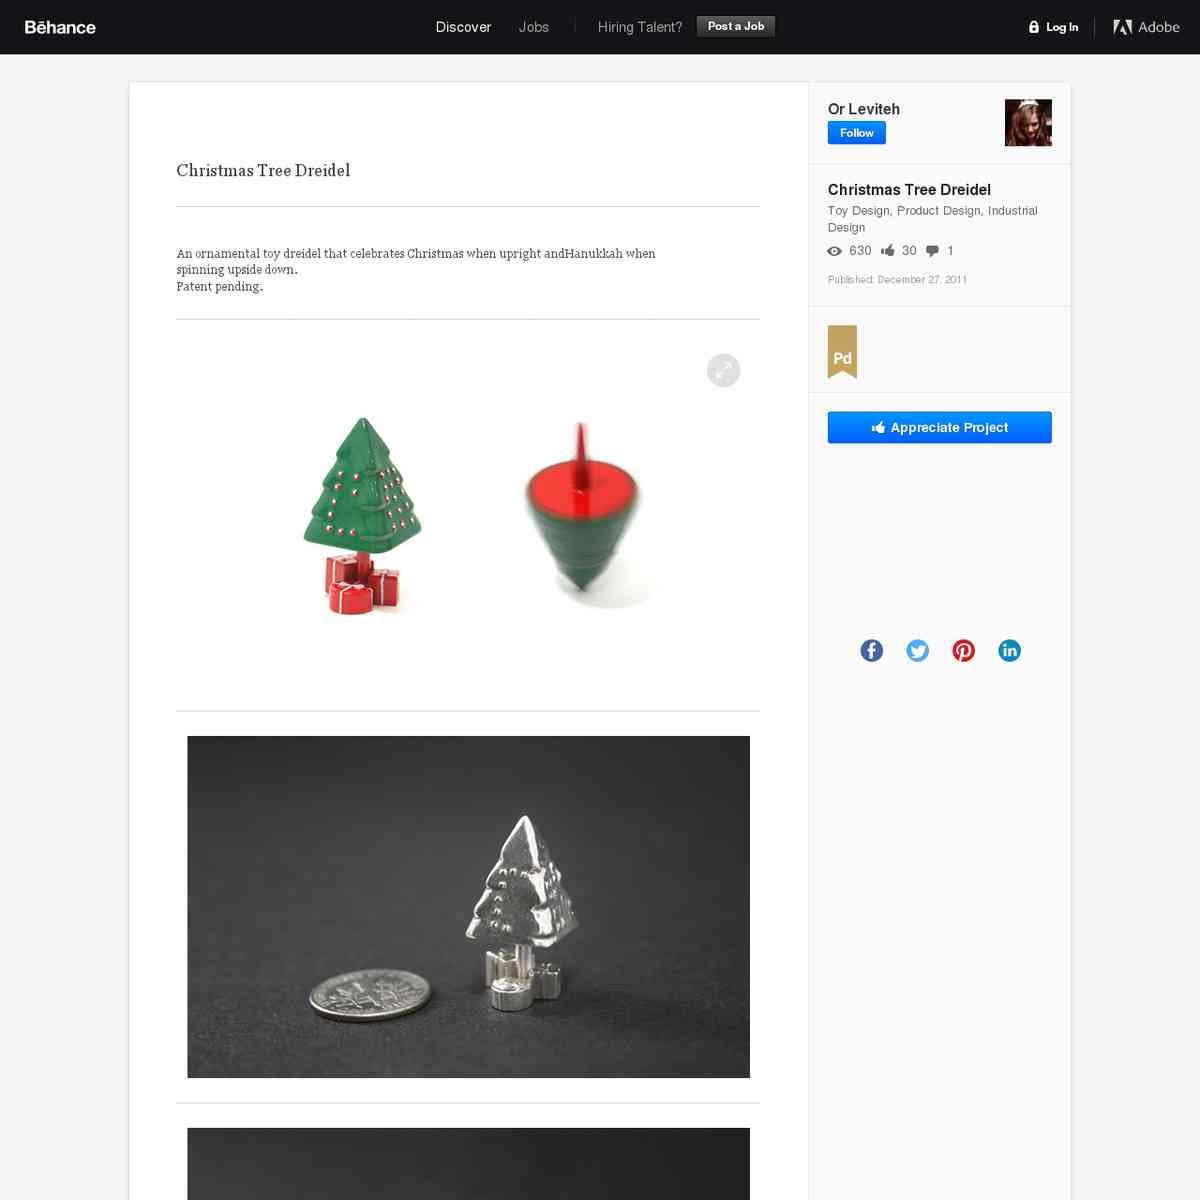 toydesignserved.com/gallery/Christmas-Tree-Dreidel/2748167